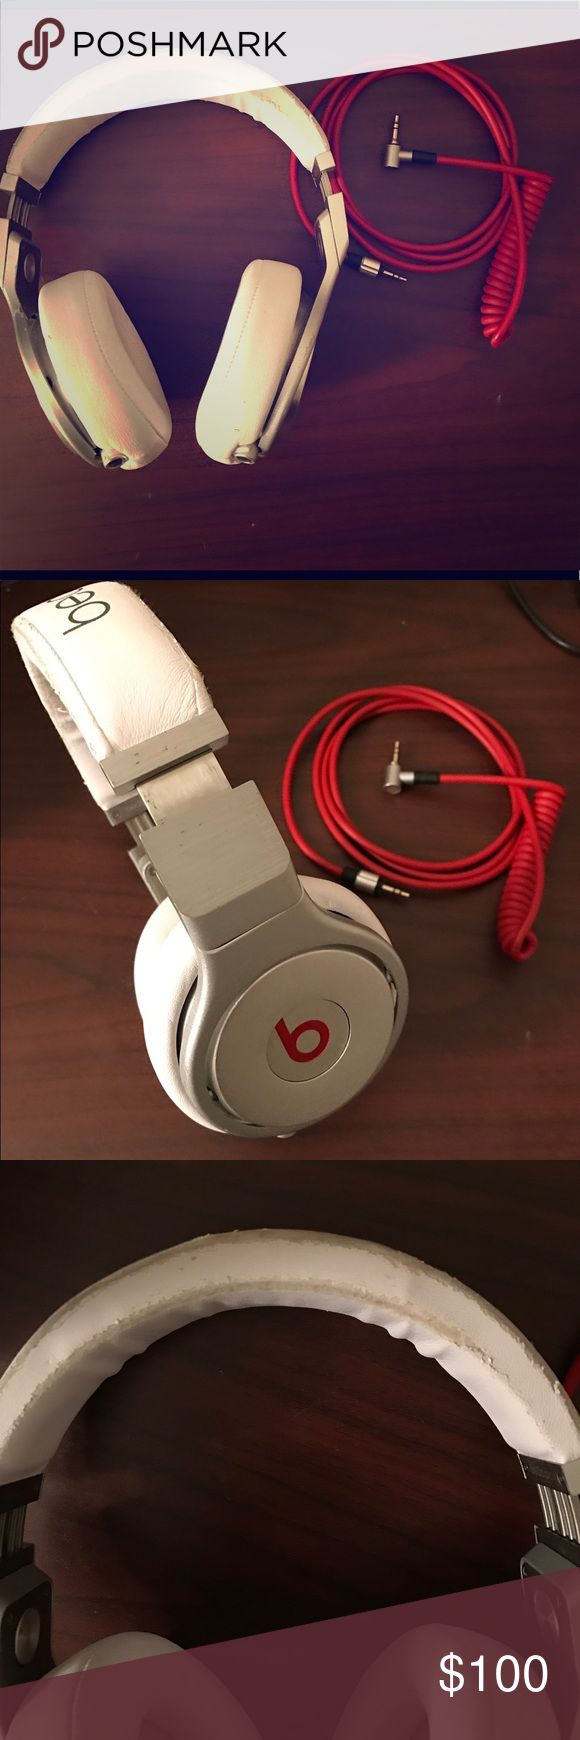 Beats Pro Wired Over-Ear Headphones White/Silver I am currently using the PowerBeats now and they work better with my new lifestyle of fitness! These headphones are truly wonderful, however they are becoming a hassle when going to the gym and other places! The two issues with these headphones are that, as you can see, the headband is starting to peel due to usage, and the metal of on the sides of the ear cups is slightly scratched. These headphones sound brand new still and work perfectly…